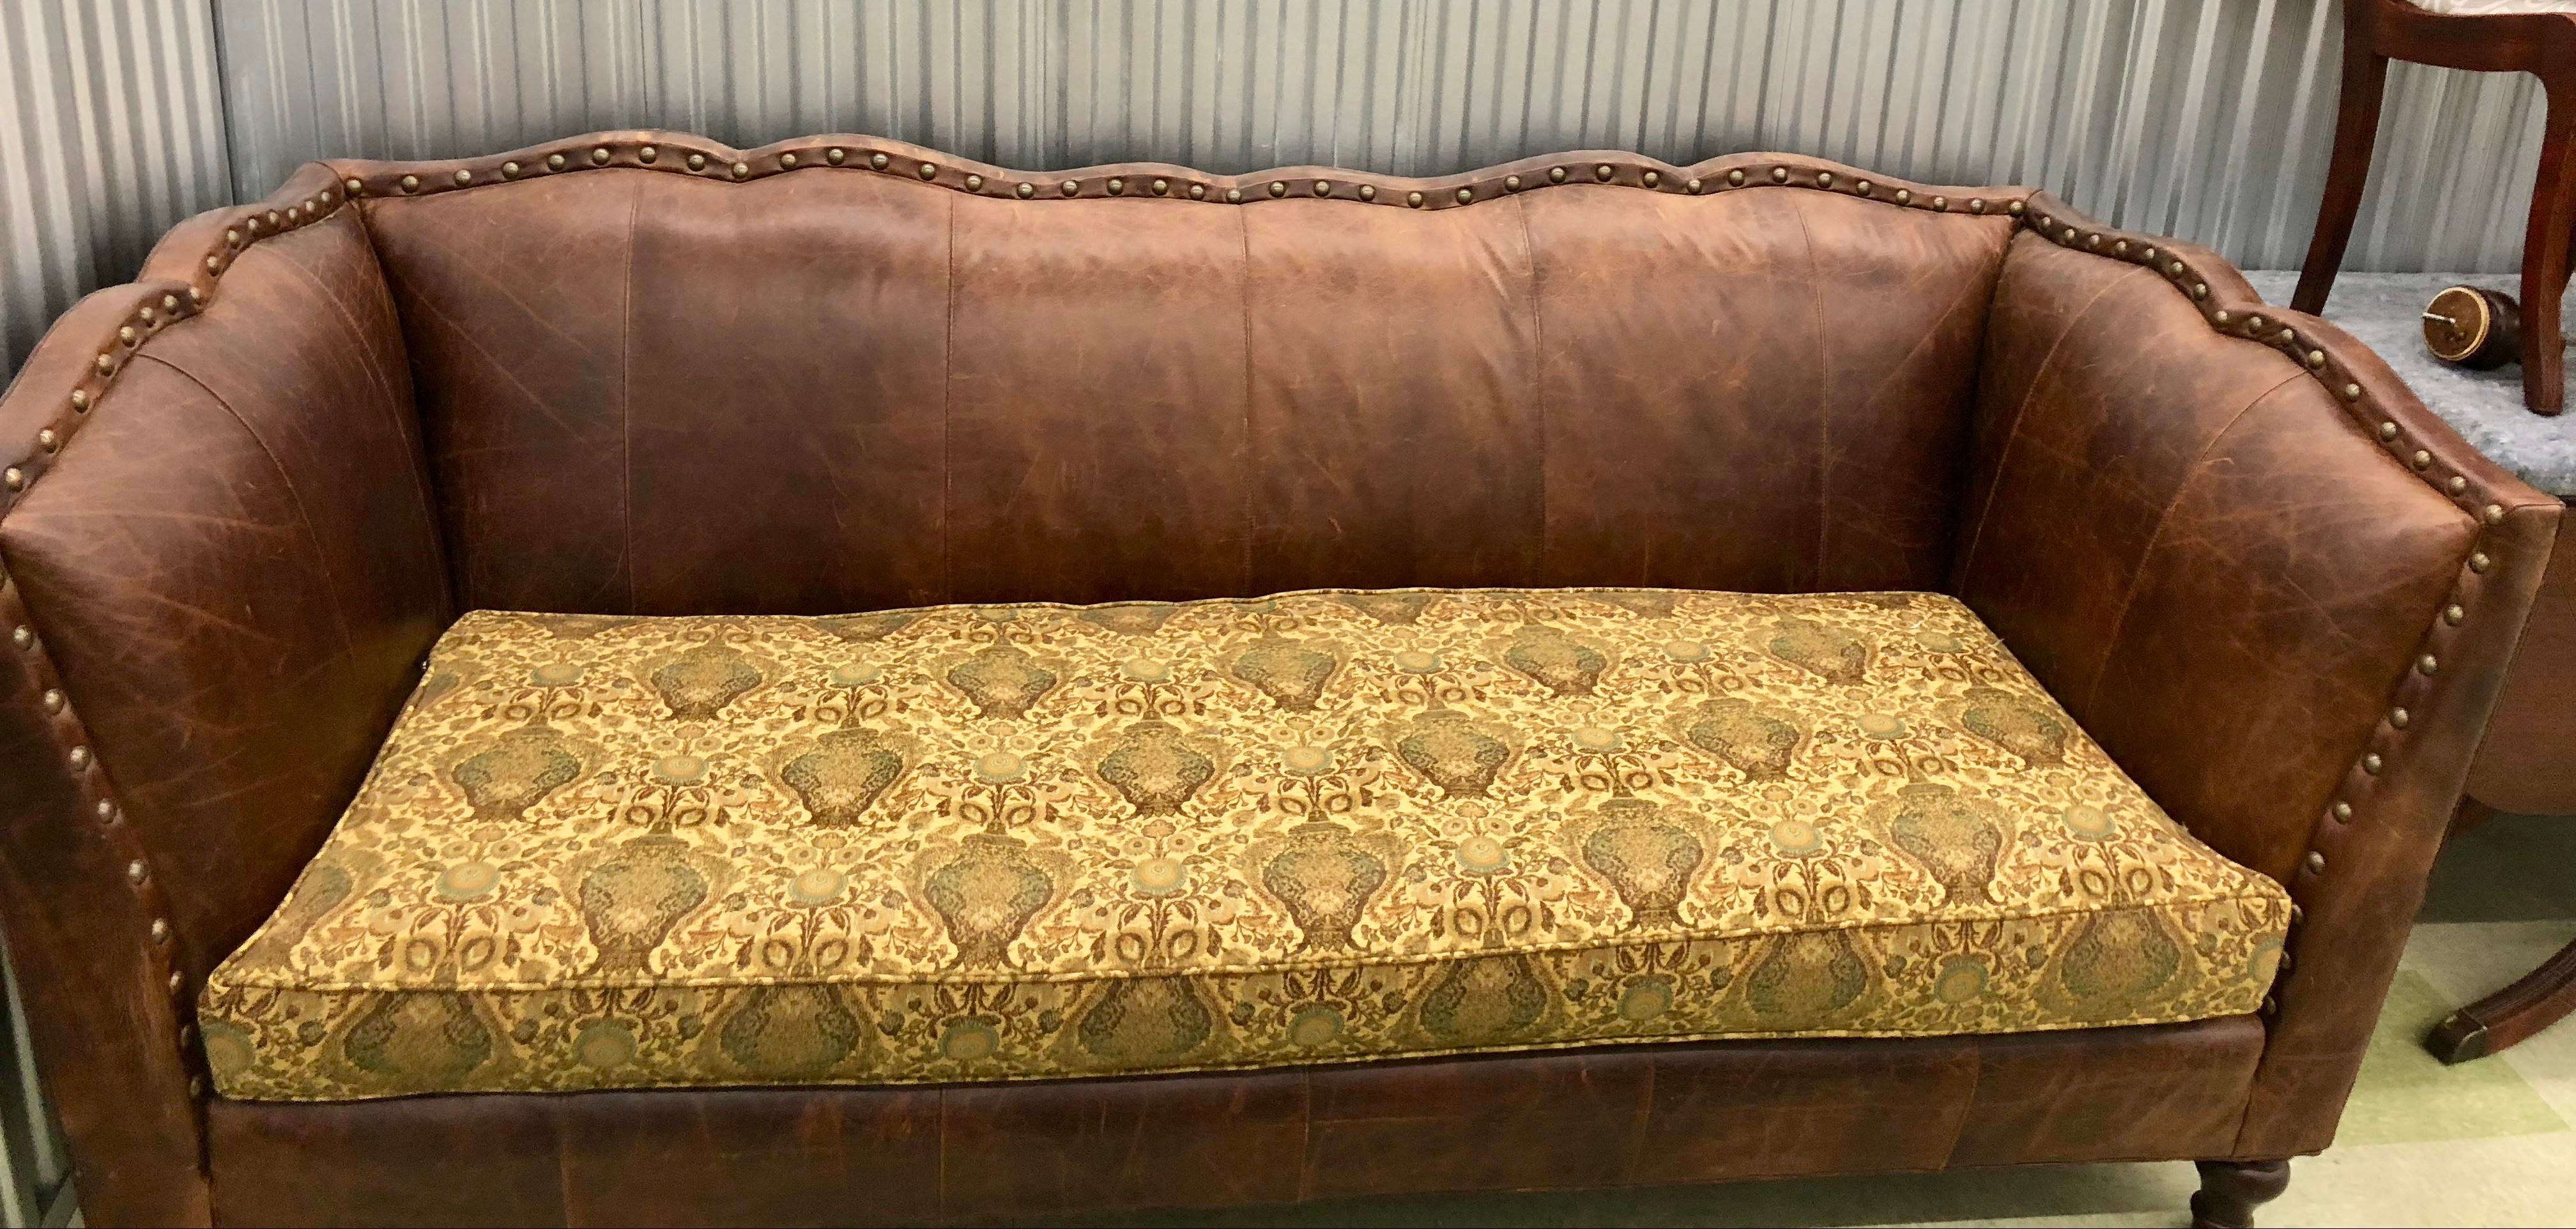 Very Classic Americana Sofa By Vanguard In Rich Leather And Tapestry  Upholstery Fabric On The Single